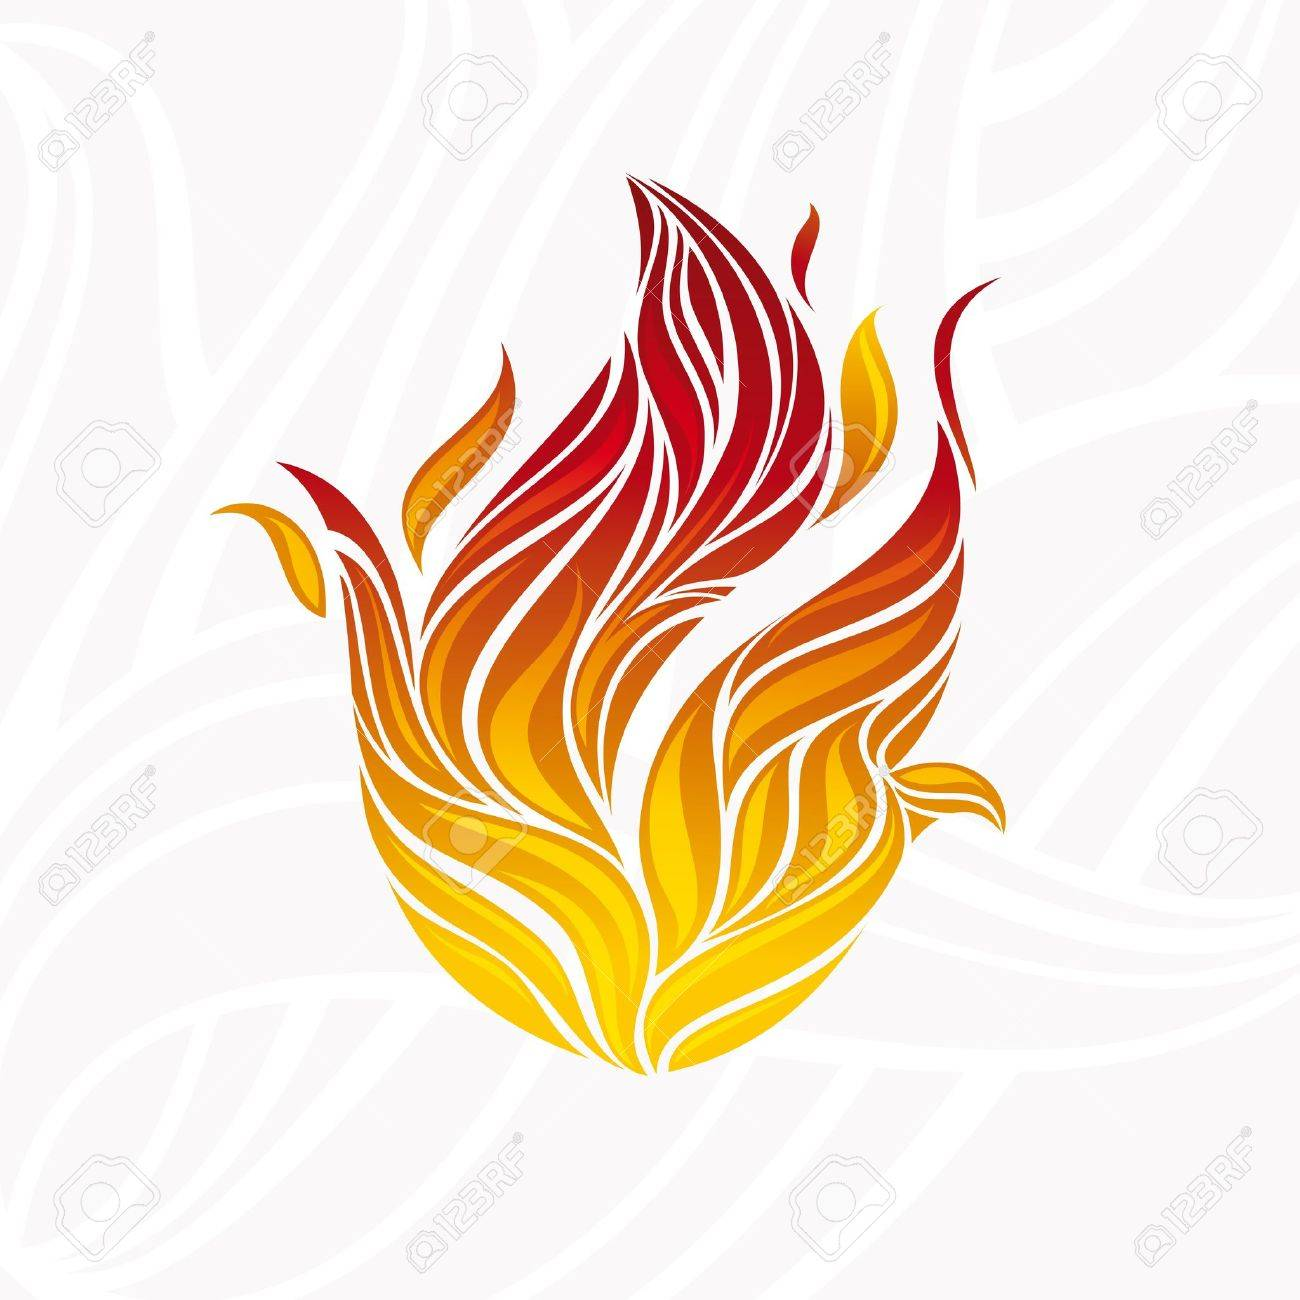 abstract artistic fire flame card illustration Stock Vector - 10045863